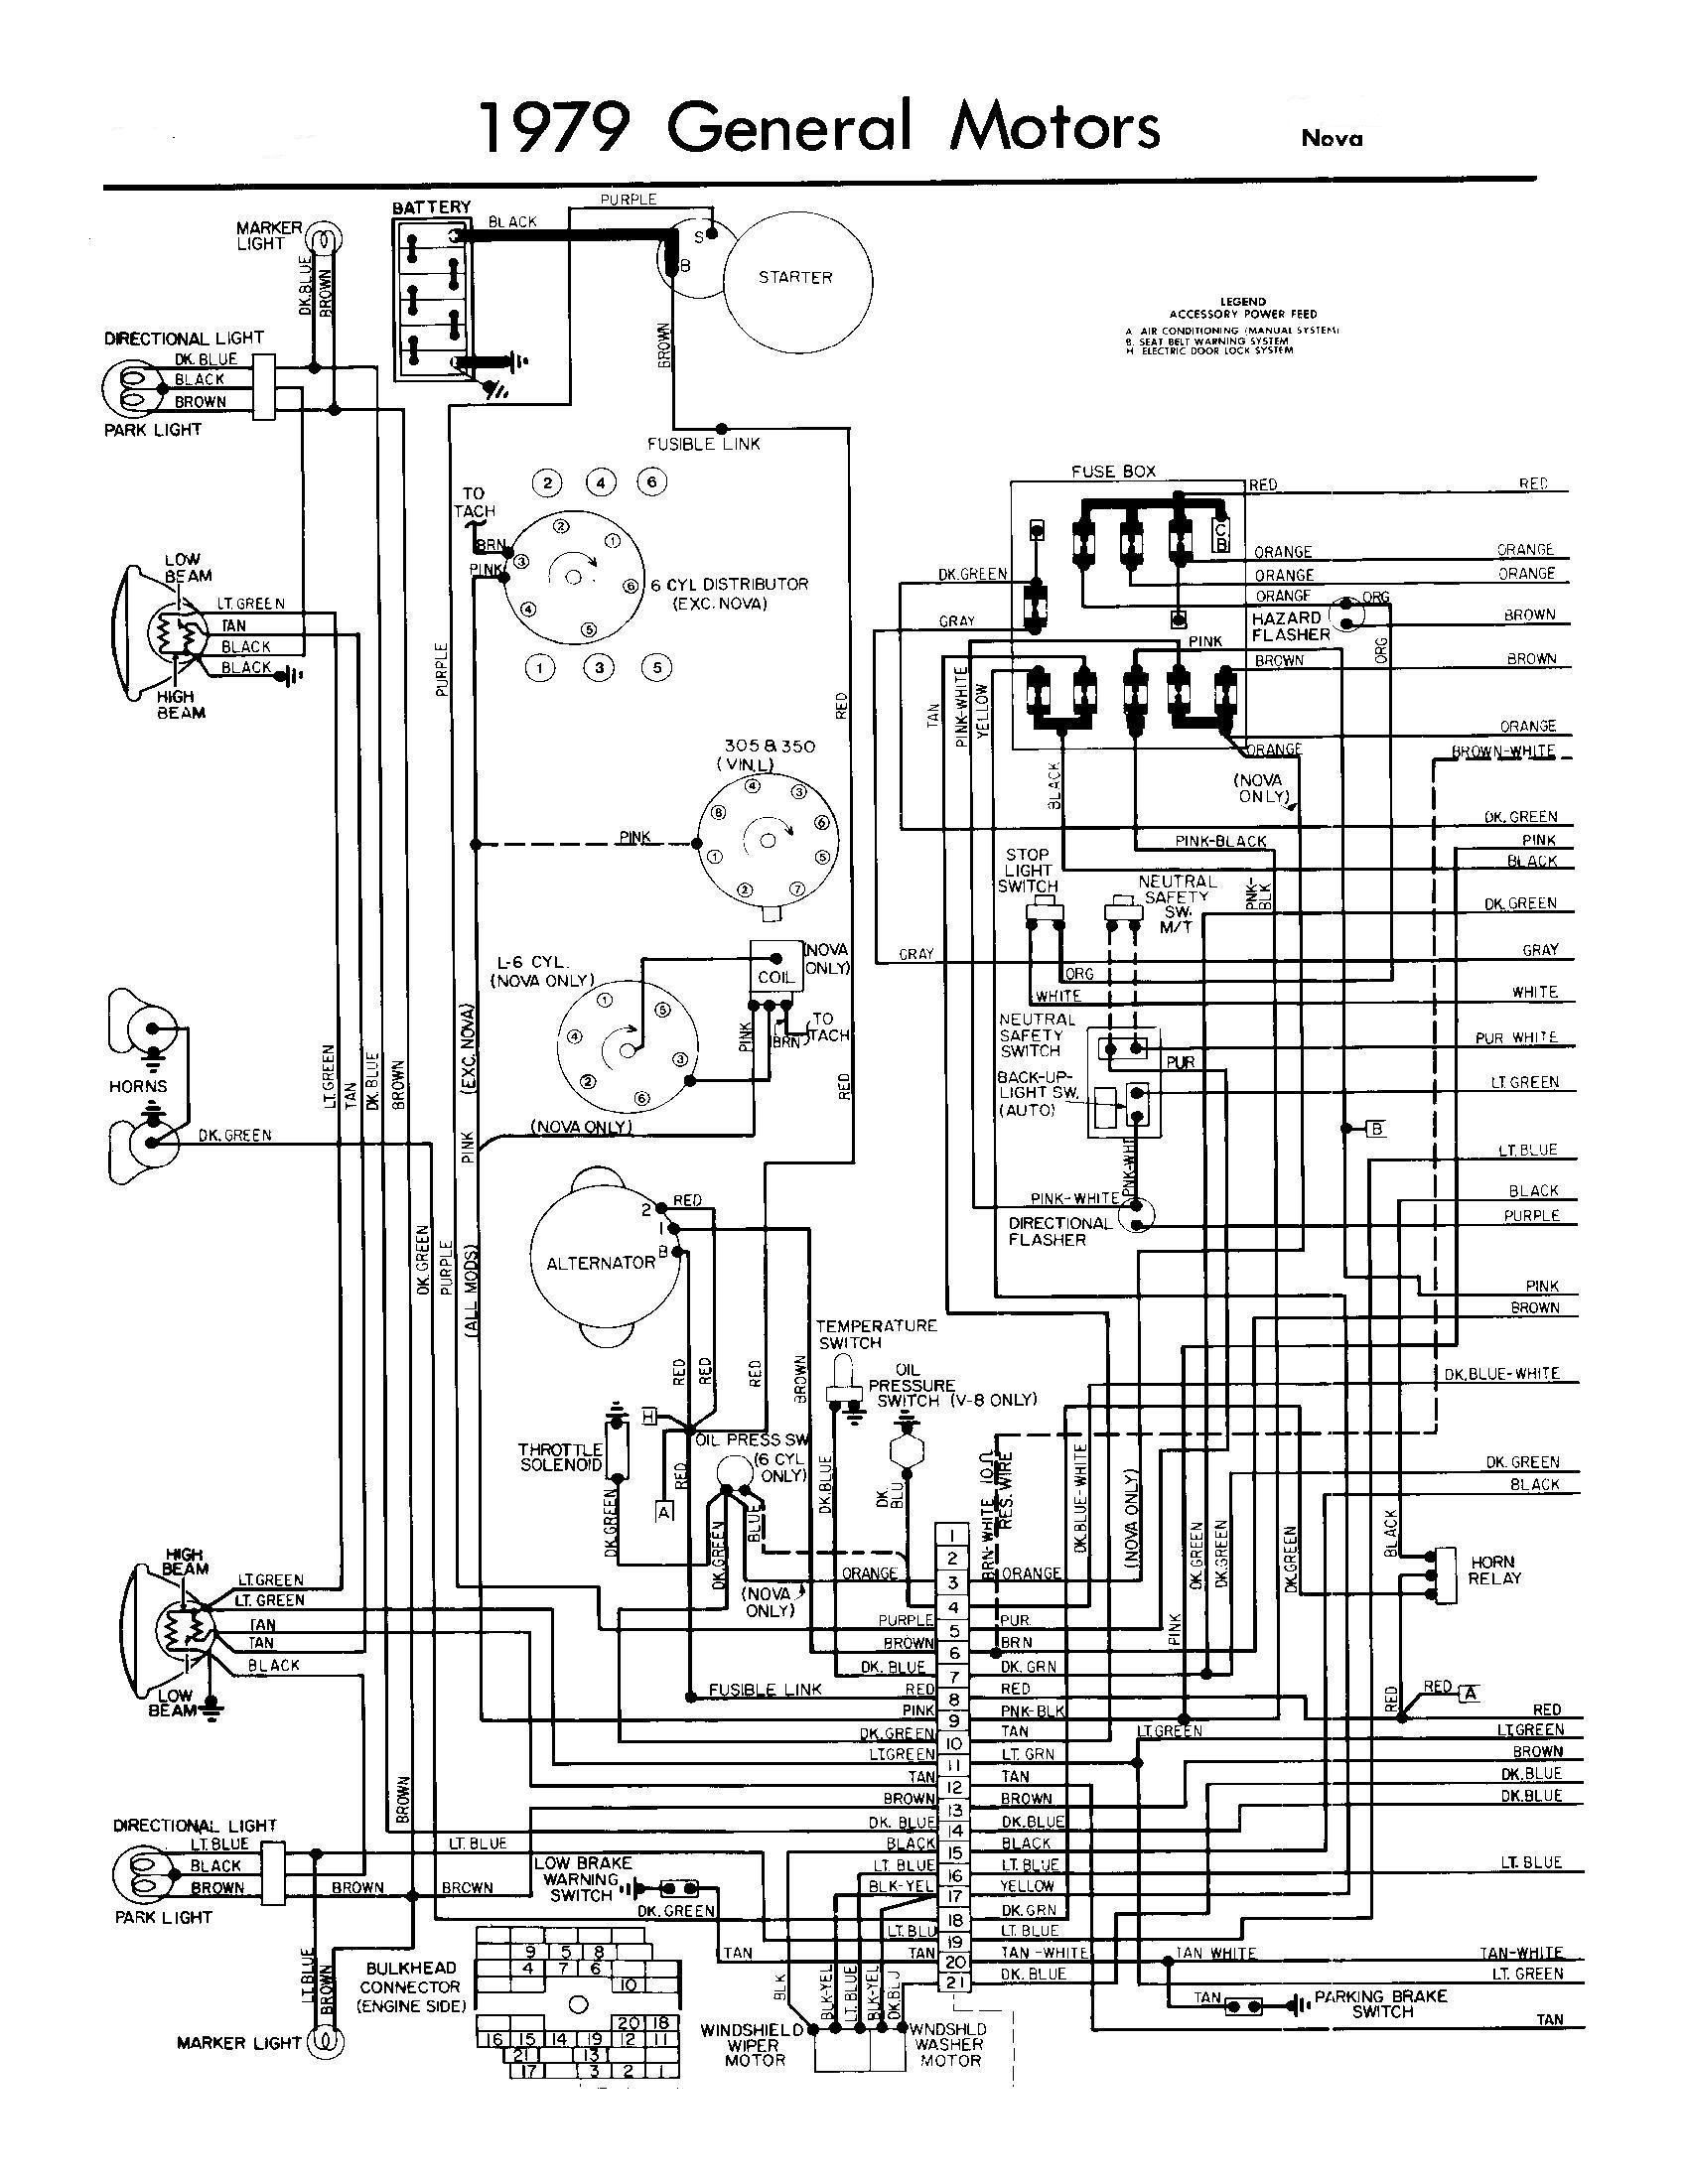 All Generation Wiring Schematics Chevy Nova Forum | Custom 79\' GMC ...